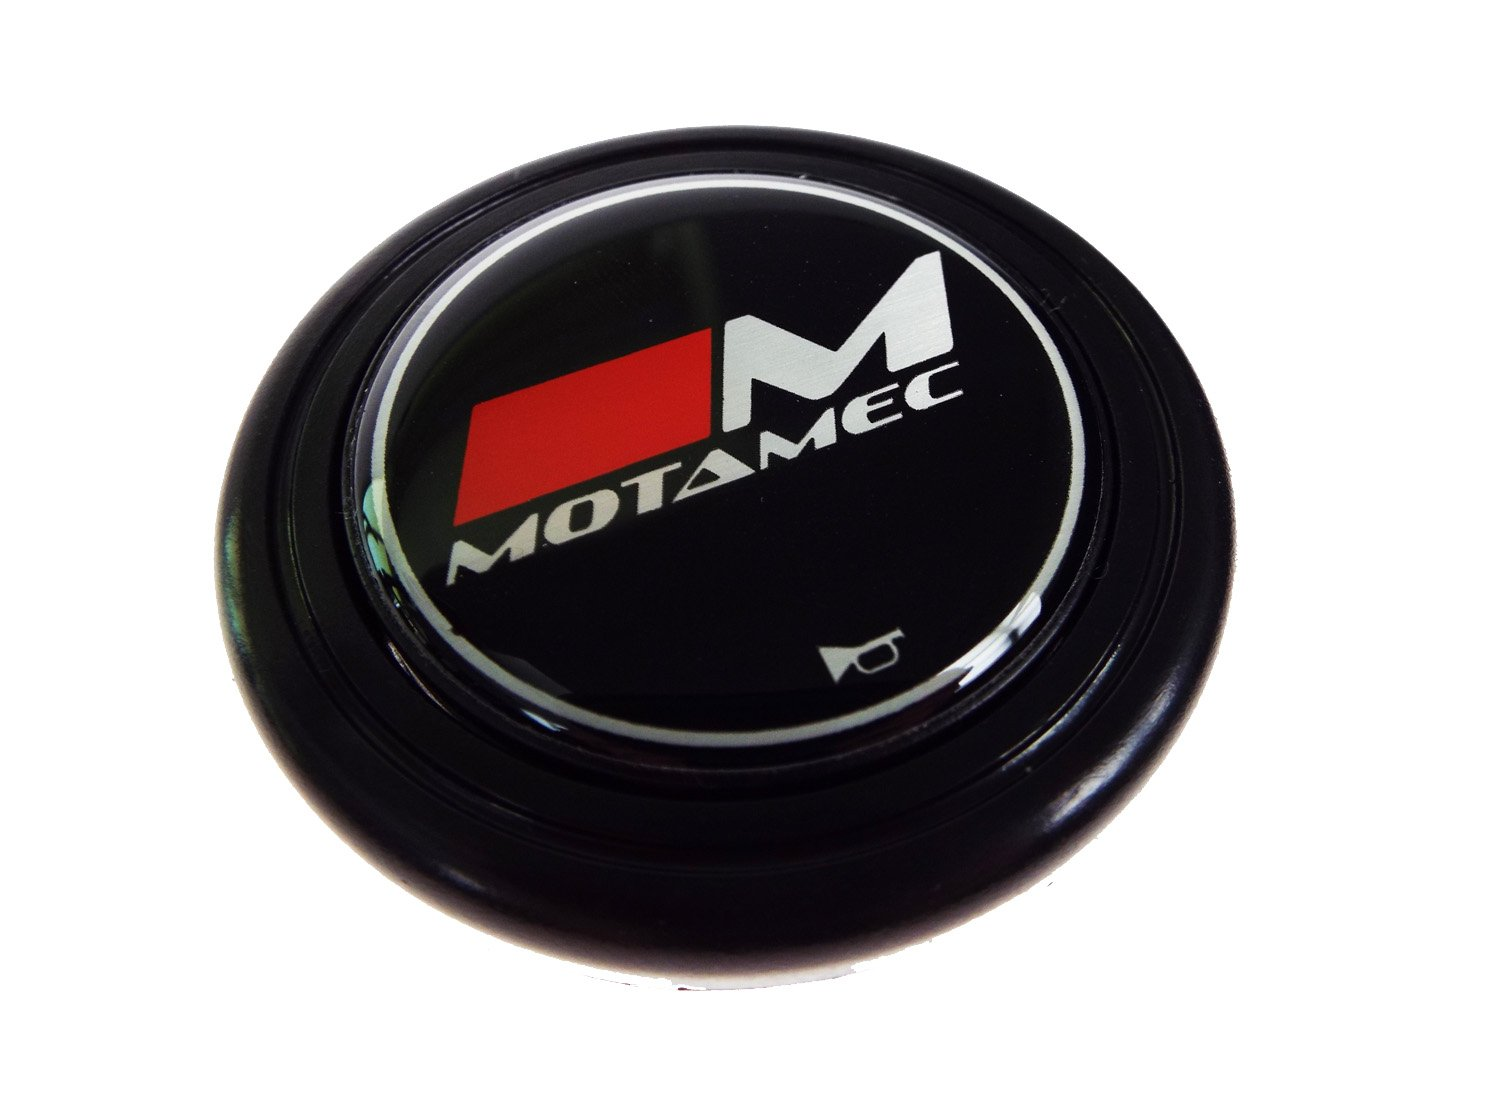 Motamec Racing Steering Wheel Horn Button Also Fits OMP MOMO OMP SPARCO